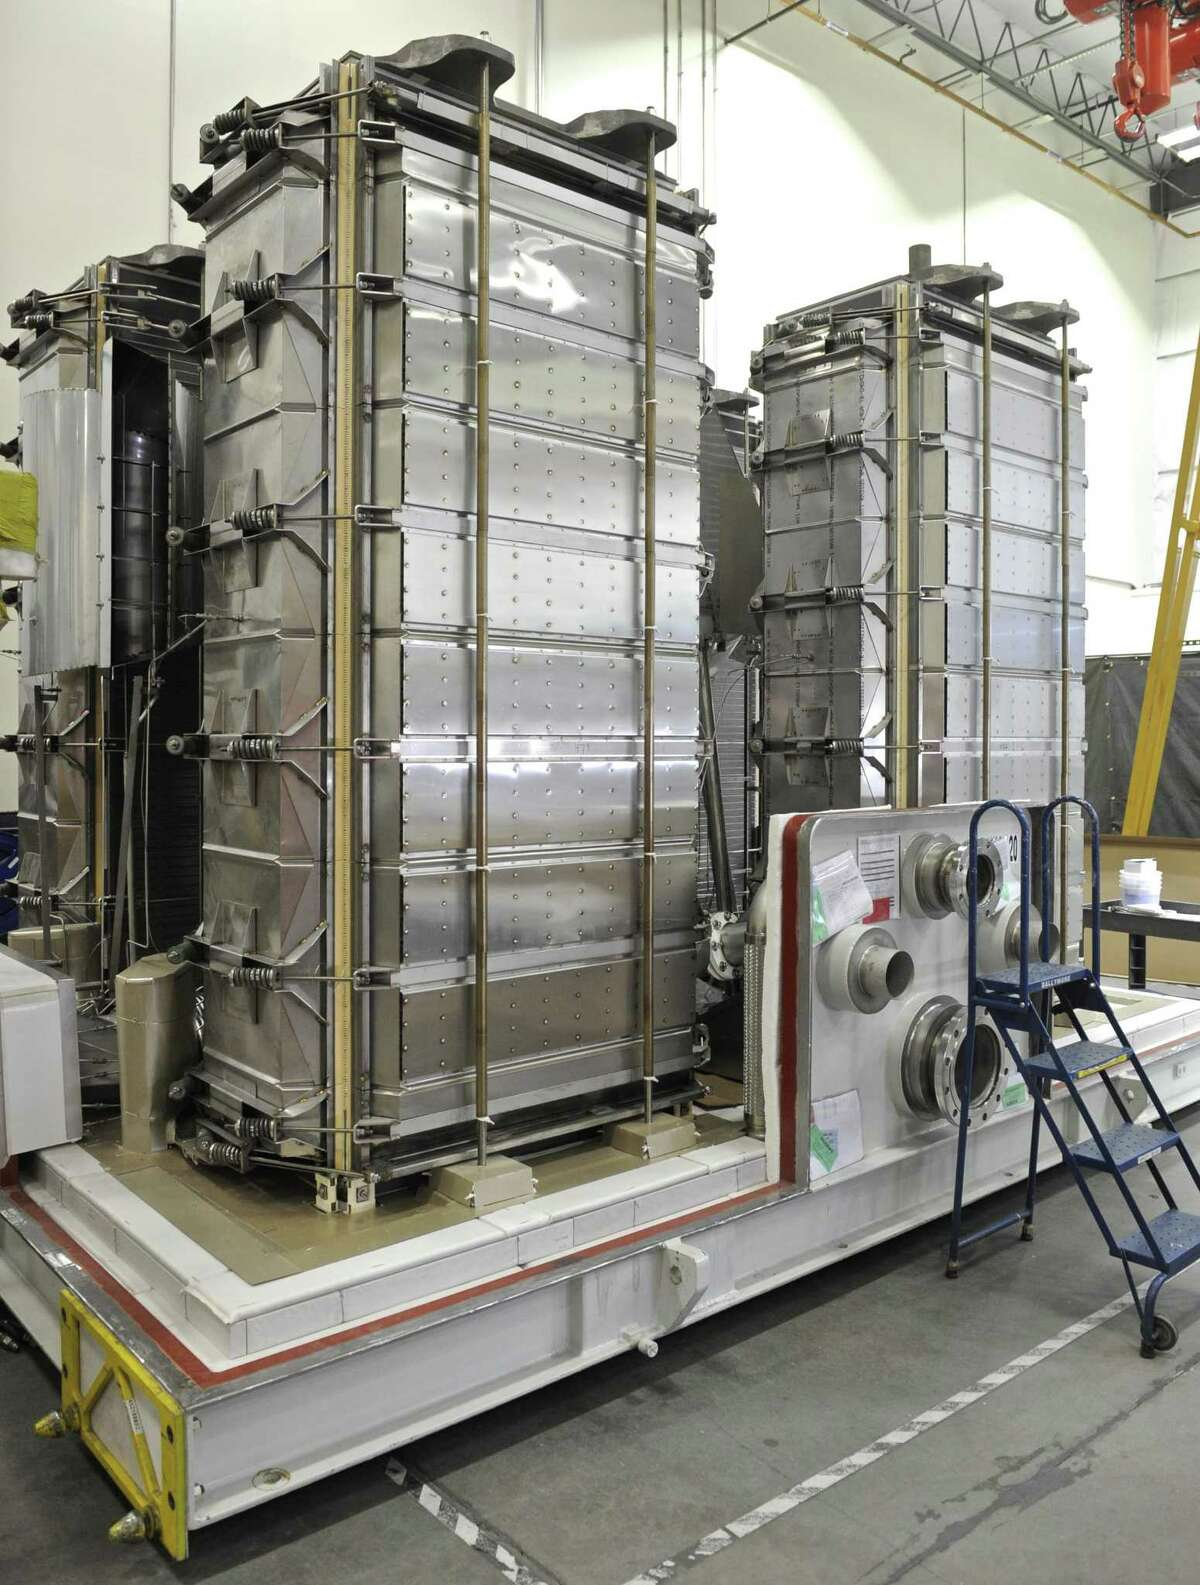 Four fuel cell stacks inside a fuel cell unit at the FuelCell Energy manufacturing plant in Torrington, Conn. Wednesday, February 1, 2017. A steel cover will be added.